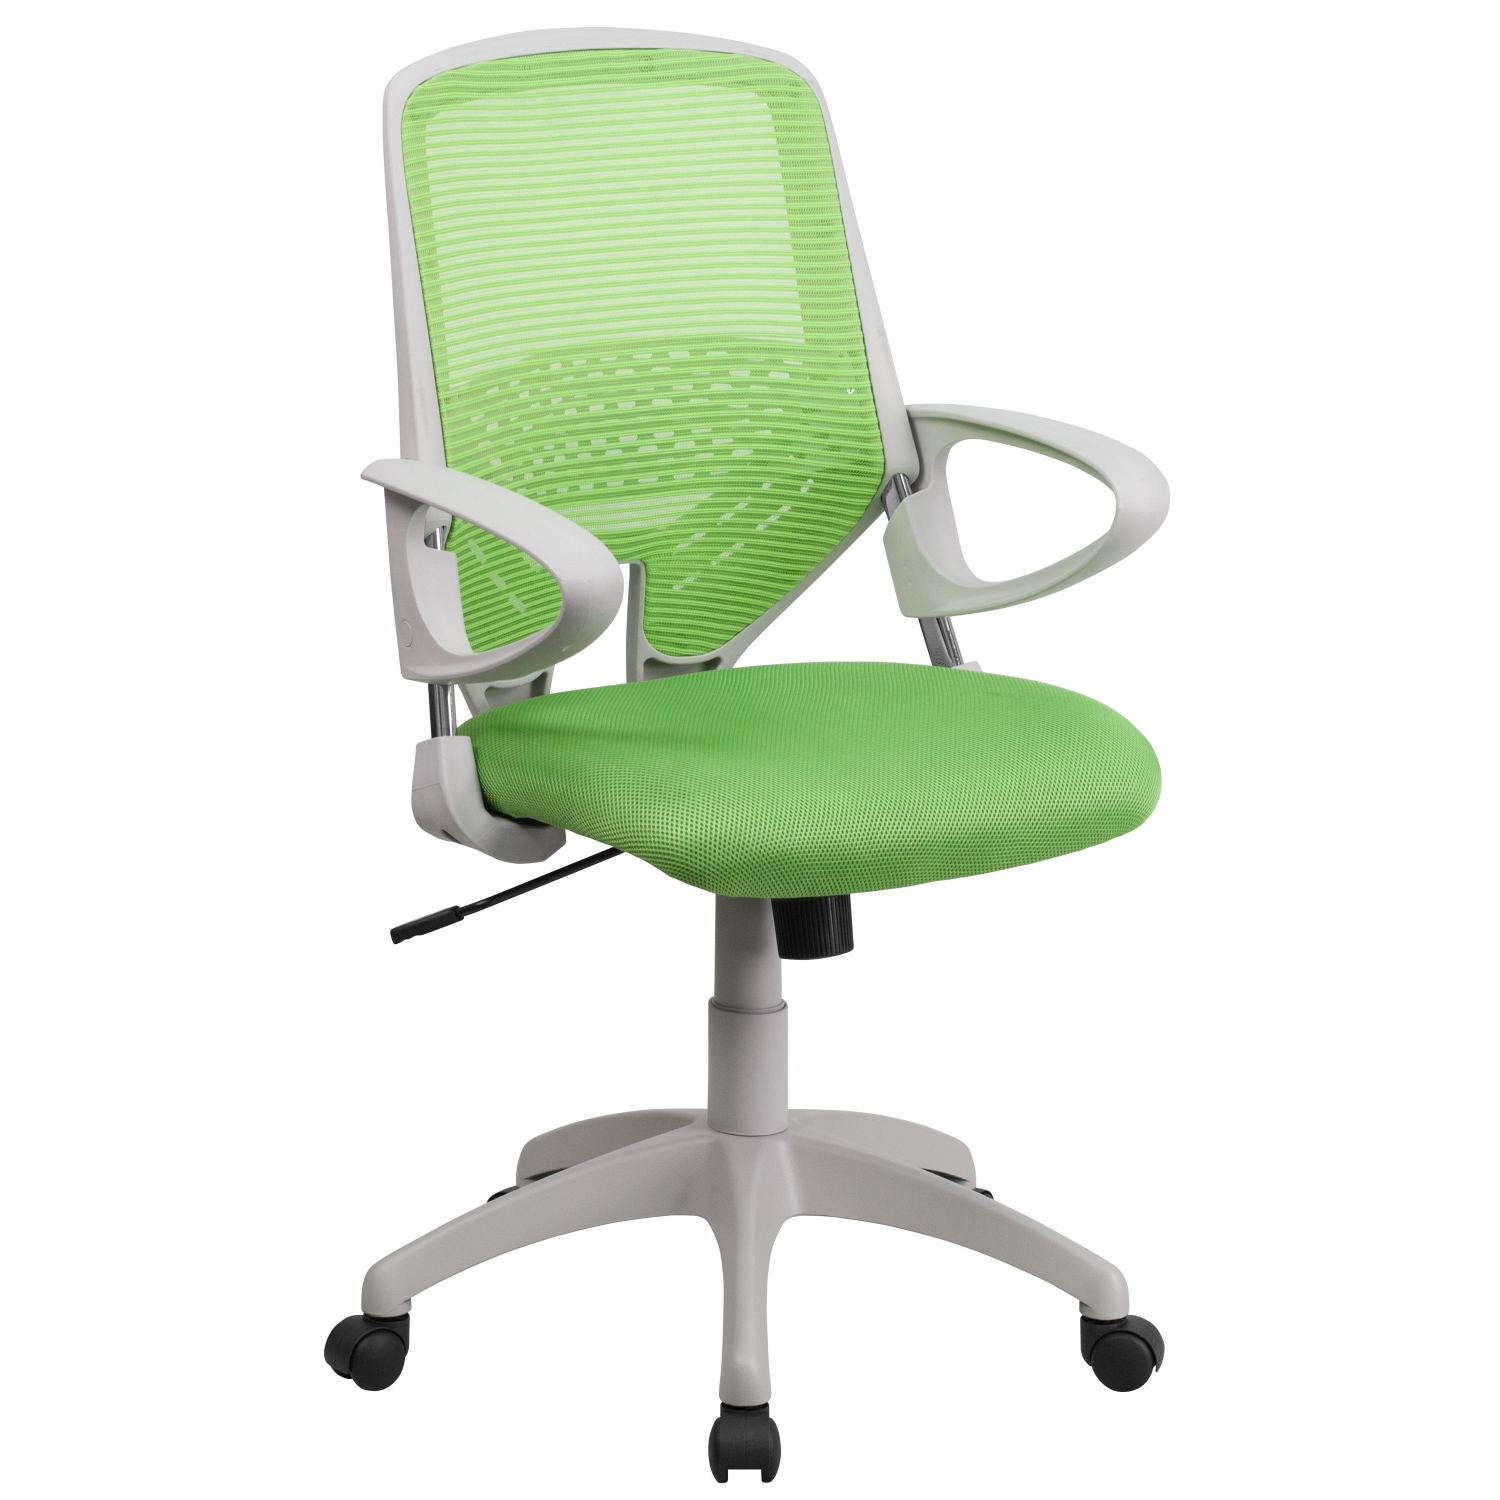 Flash furniture h 0549fx gn gg mid back green mesh office for H furniture ww chair